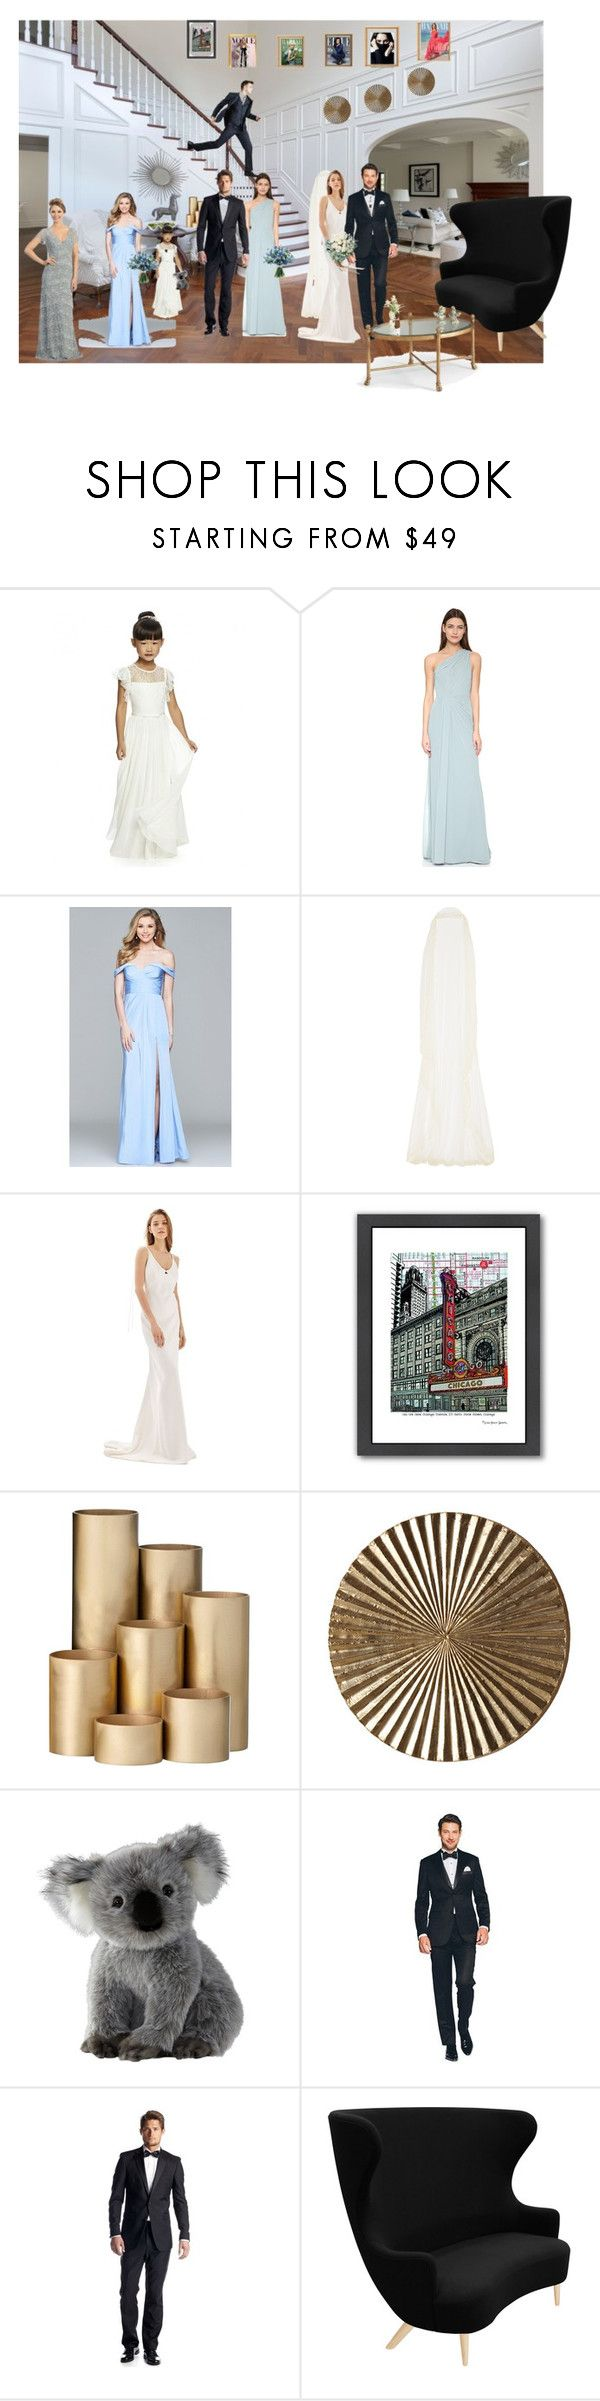 """Wedding"" by vegas777 ❤ liked on Polyvore featuring Monique Lhuillier, Faviana, Rime Arodaky, Topshop, Americanflat, ferm LIVING, WALL, Kenneth Cole Reaction, Tom Dixon and Chelsea House"